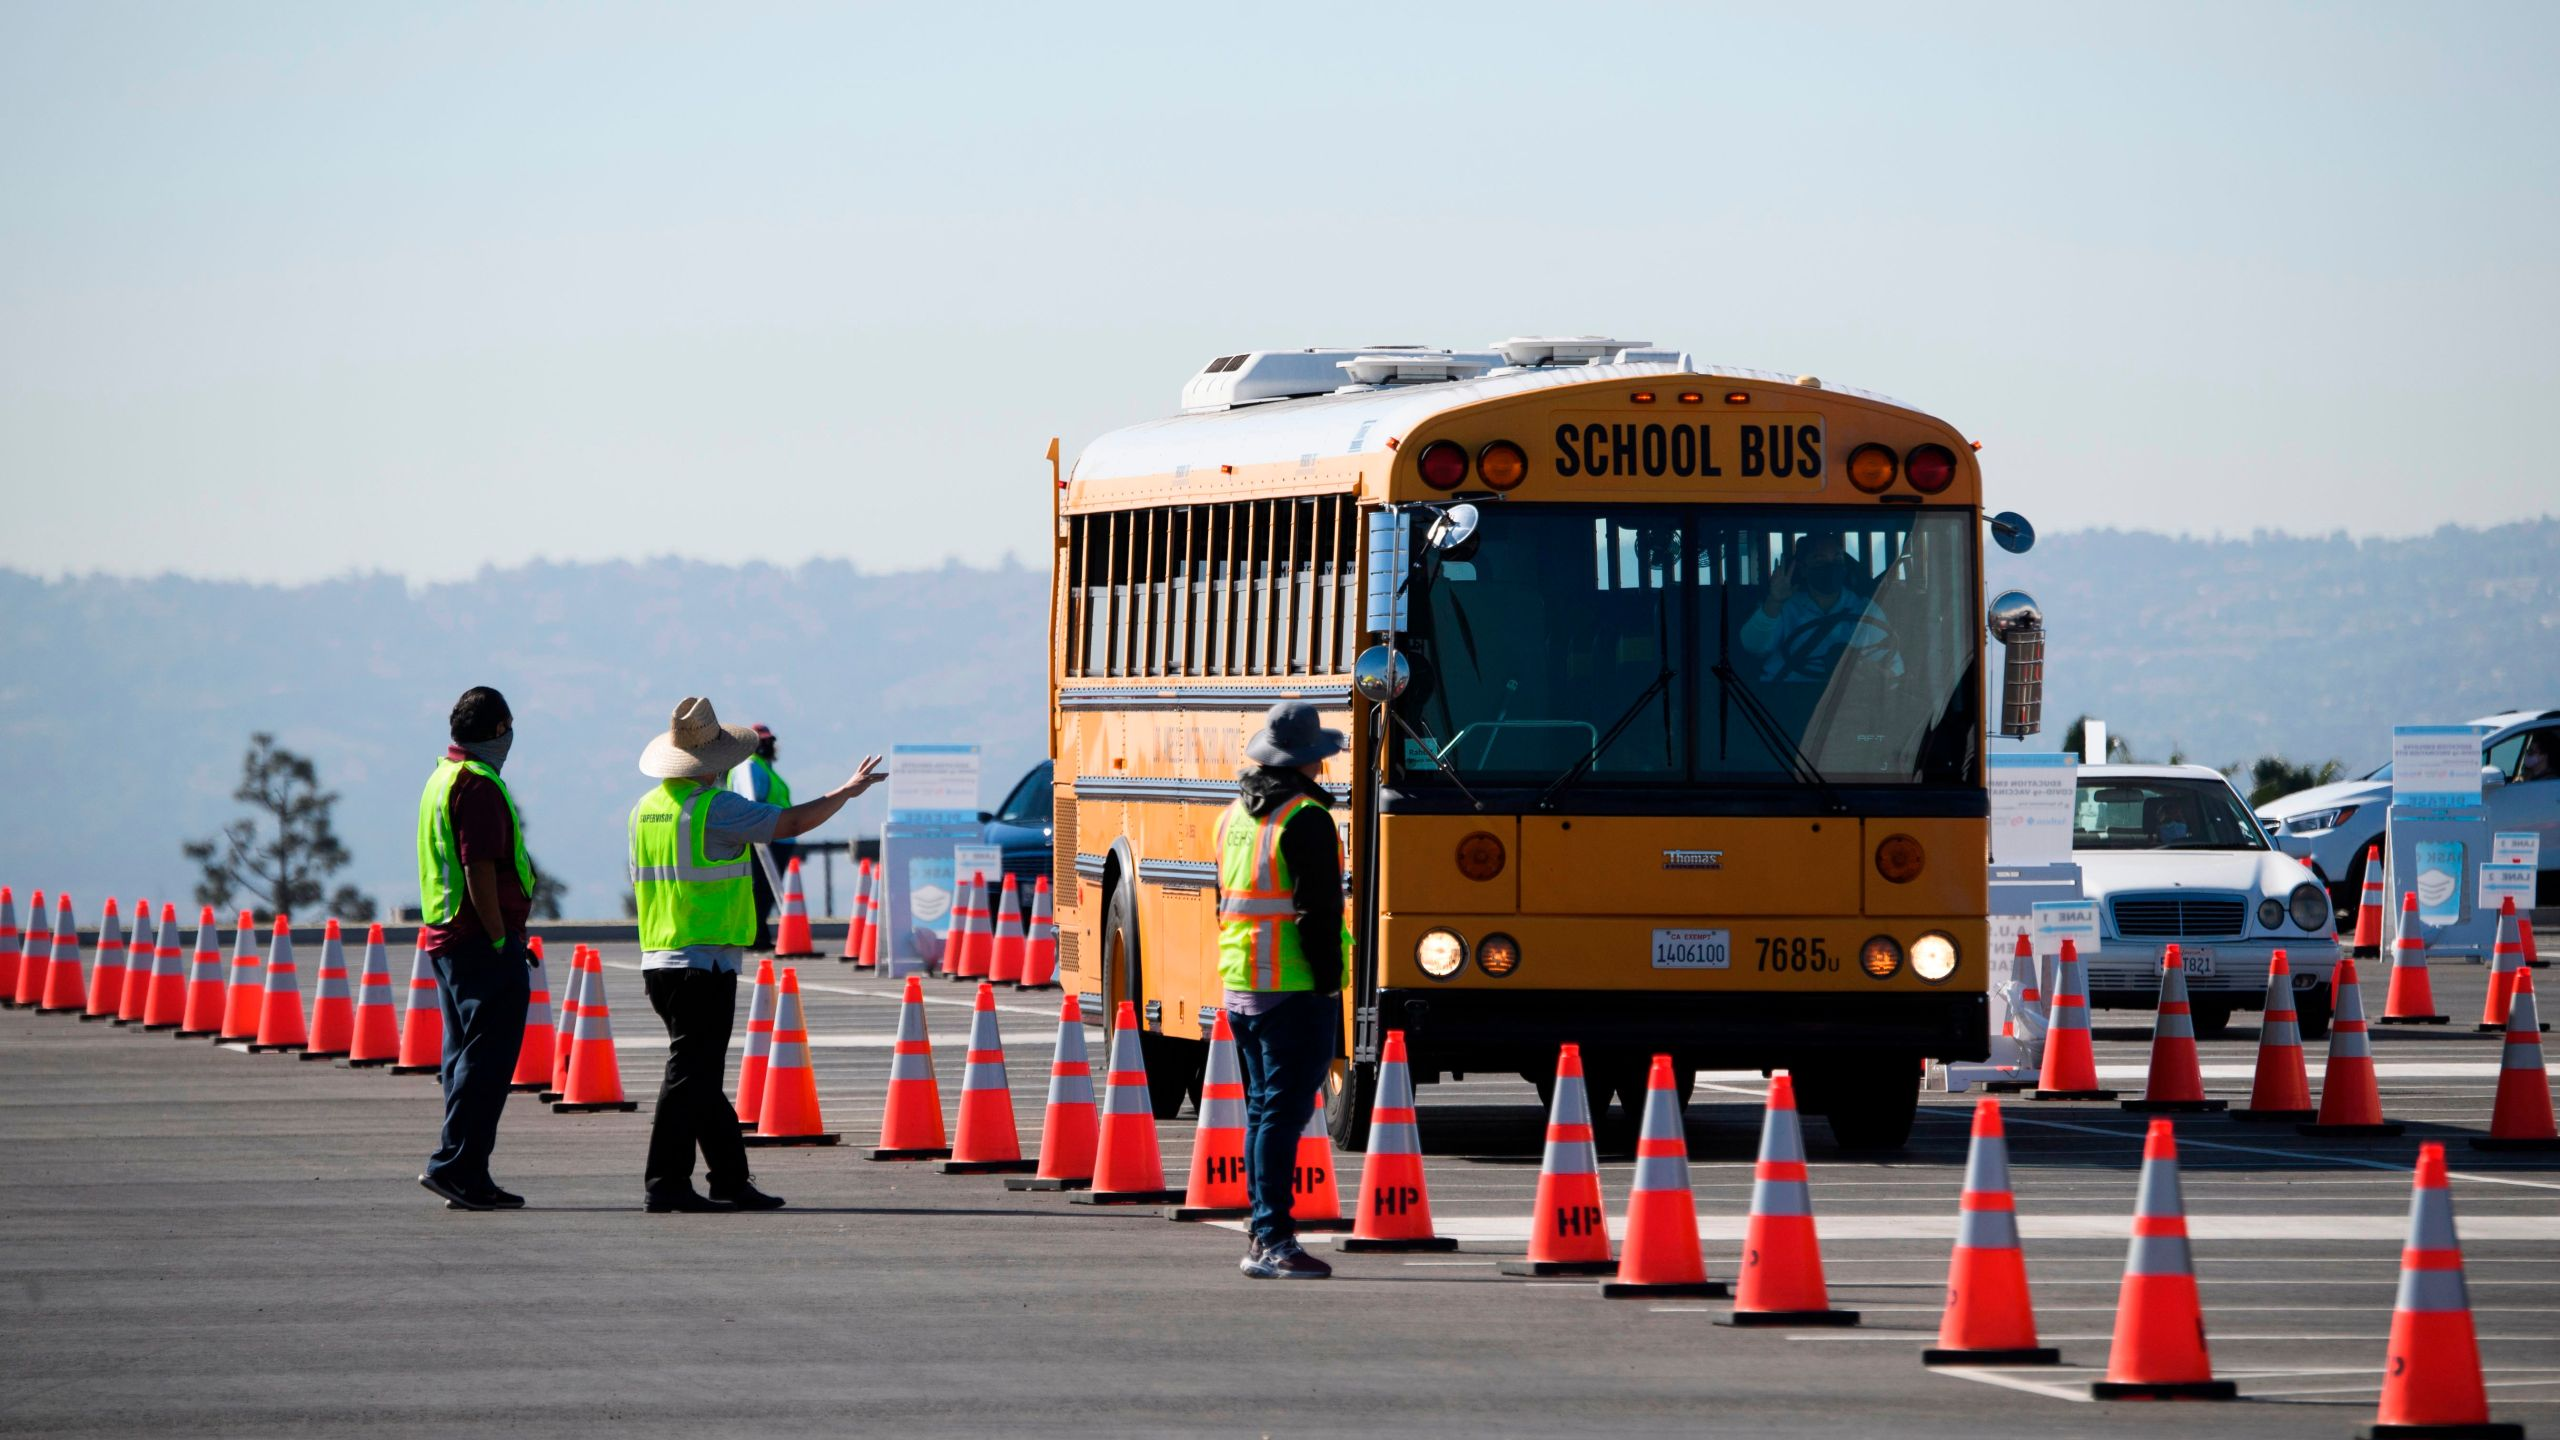 A school bus transporting education workers arrives at a mass vaccination site near SoFi stadium on March 1, 2021 in Inglewood. (PATRICK T. FALLON/AFP via Getty Images)